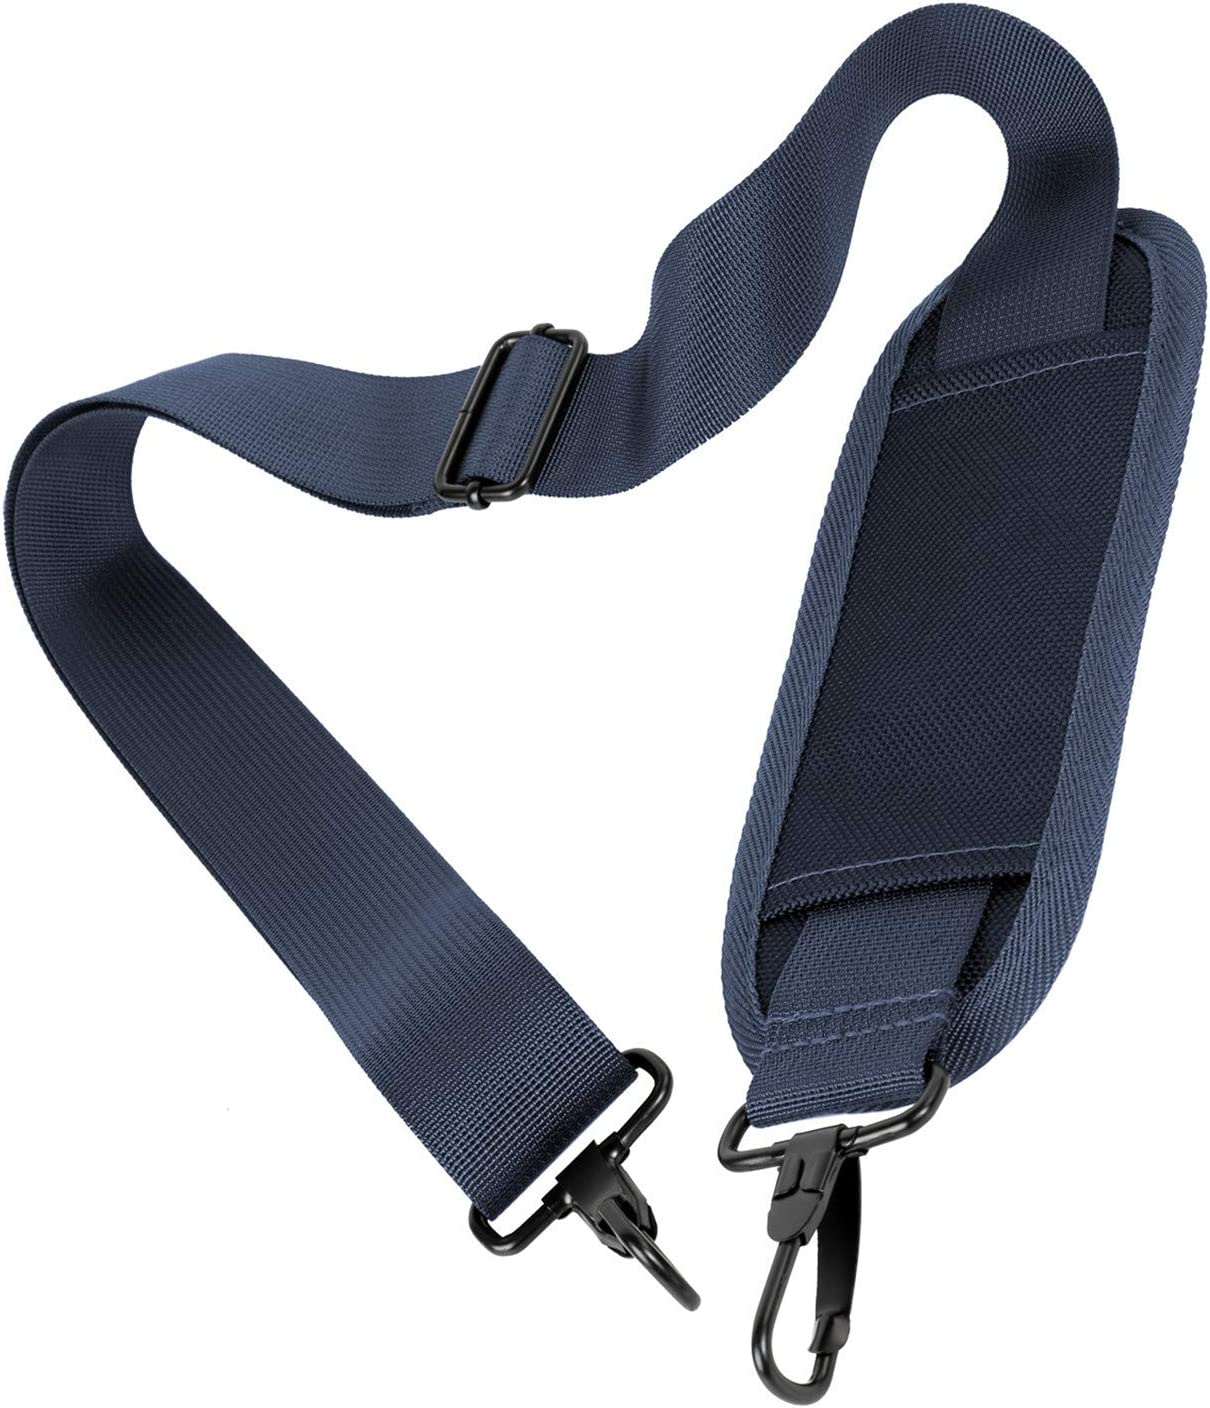 Taygeer Padded Shoulder Strap, Adjustable Strap Replacement for Laptop Case Duffle Bag Garment Bag Cosmetic Case Messenger Bag Briefcase, Durable Nylon Crossbody Belt for Carrying with Hook Clip,Blue